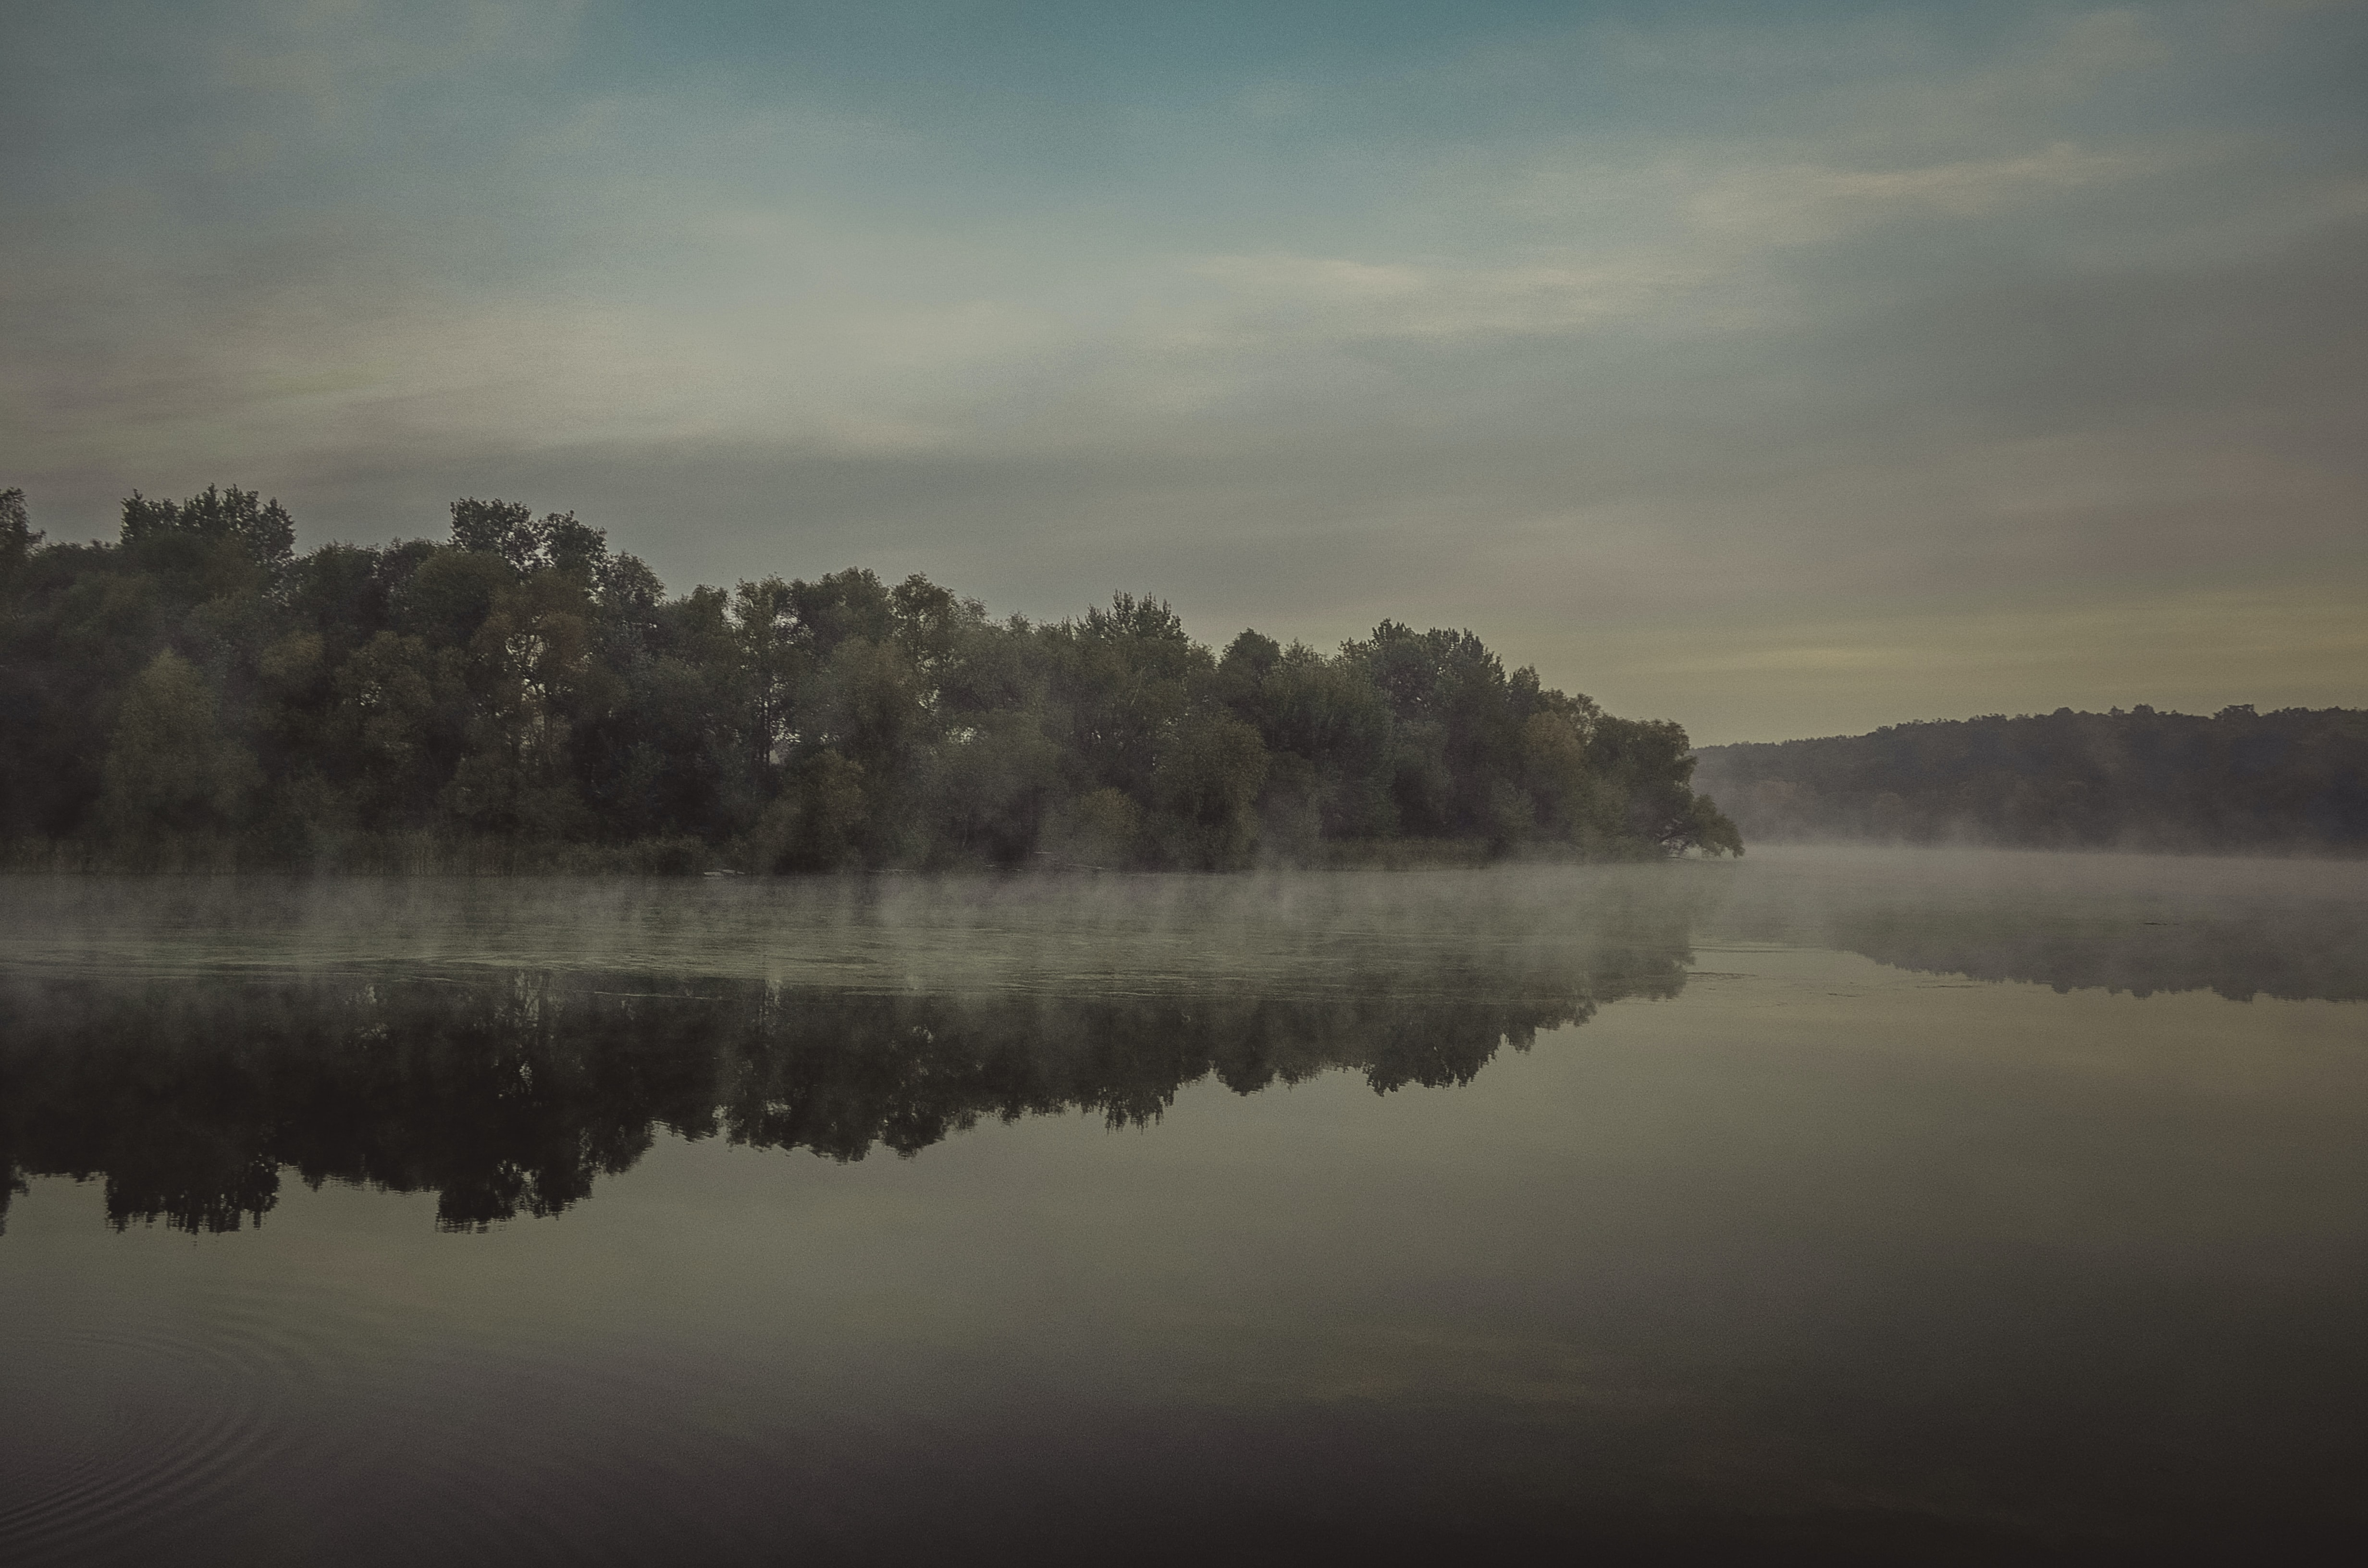 A patchy fog over the surface of a lake in the evening